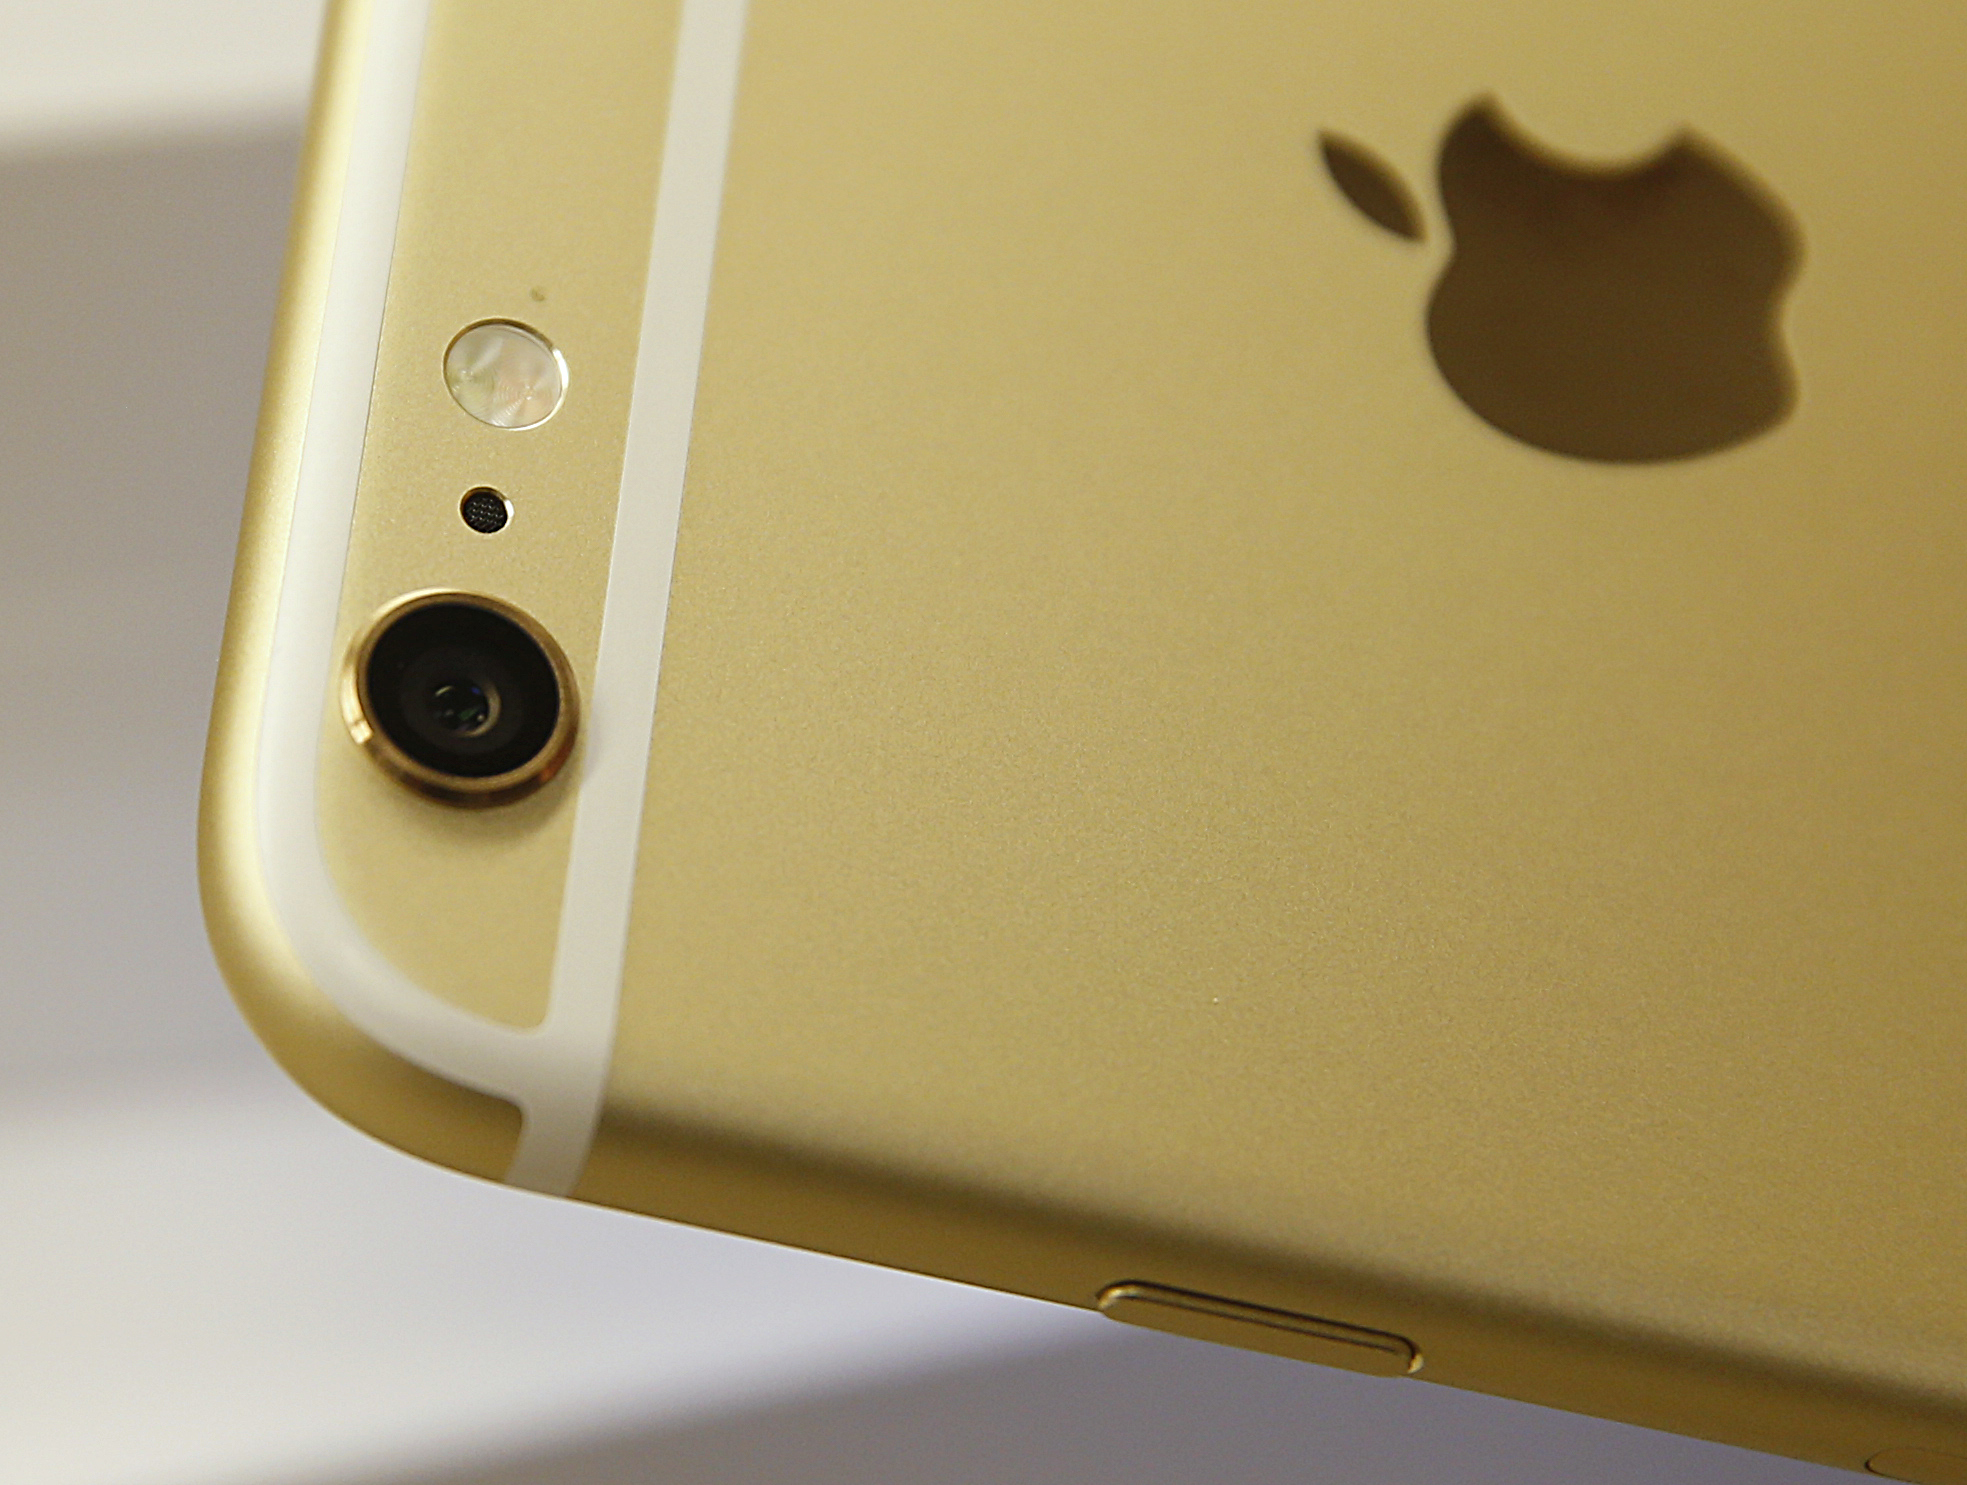 The camera and flash of an Apple iPhone 6 Plus.